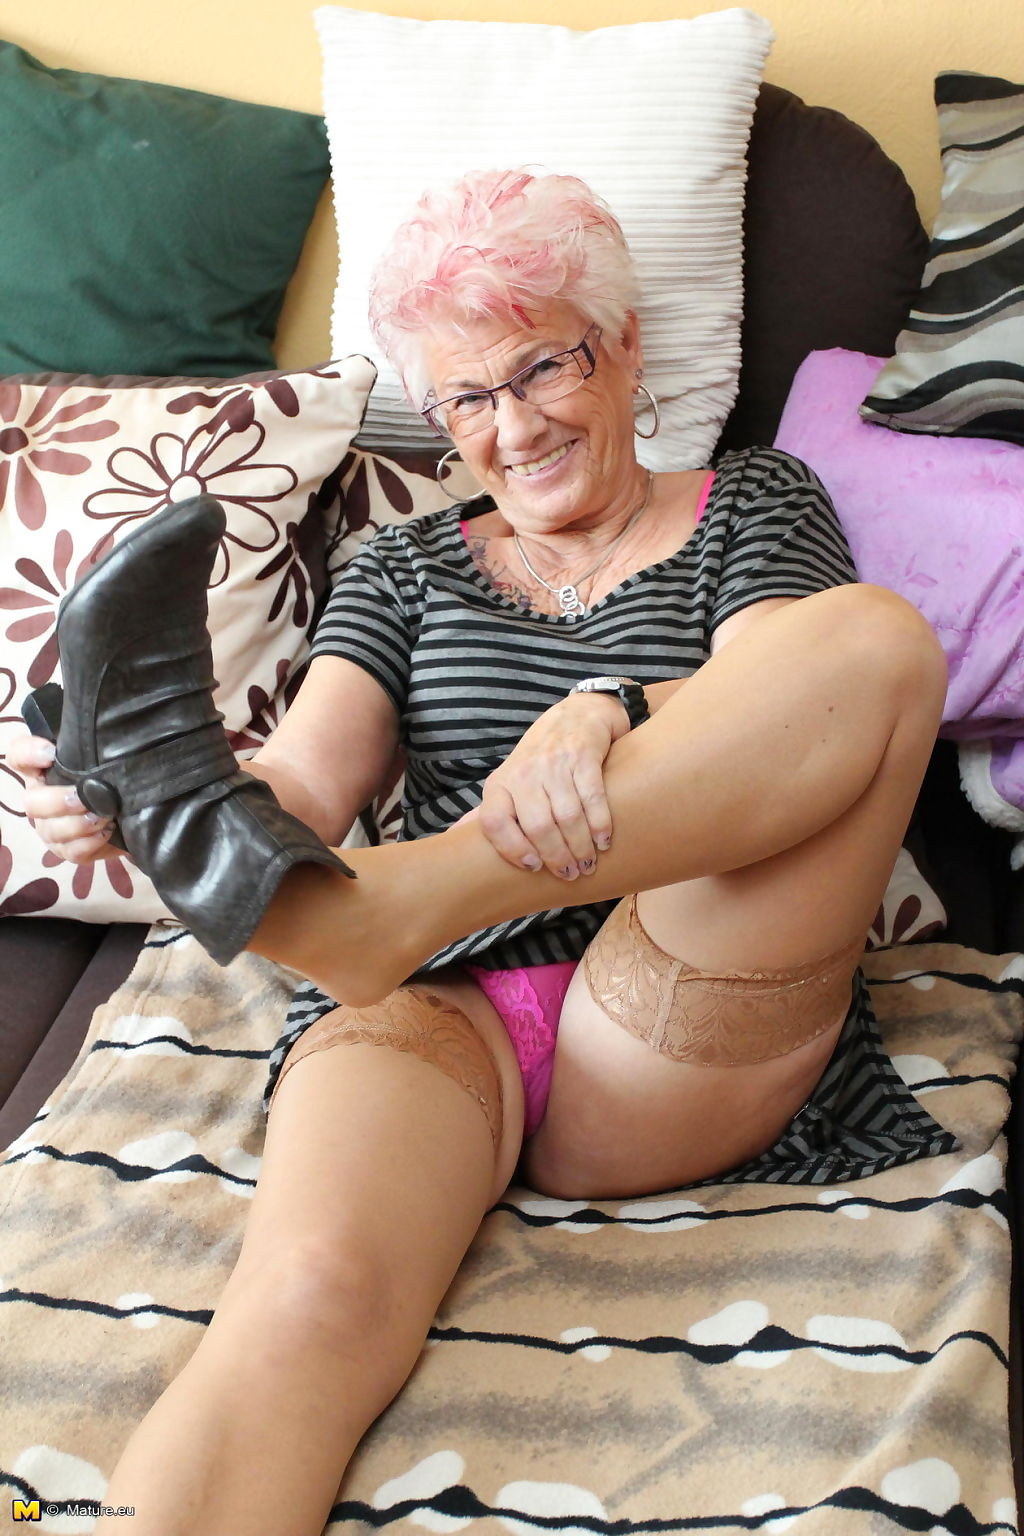 Mature gerdi is one horny german housewife - part 189